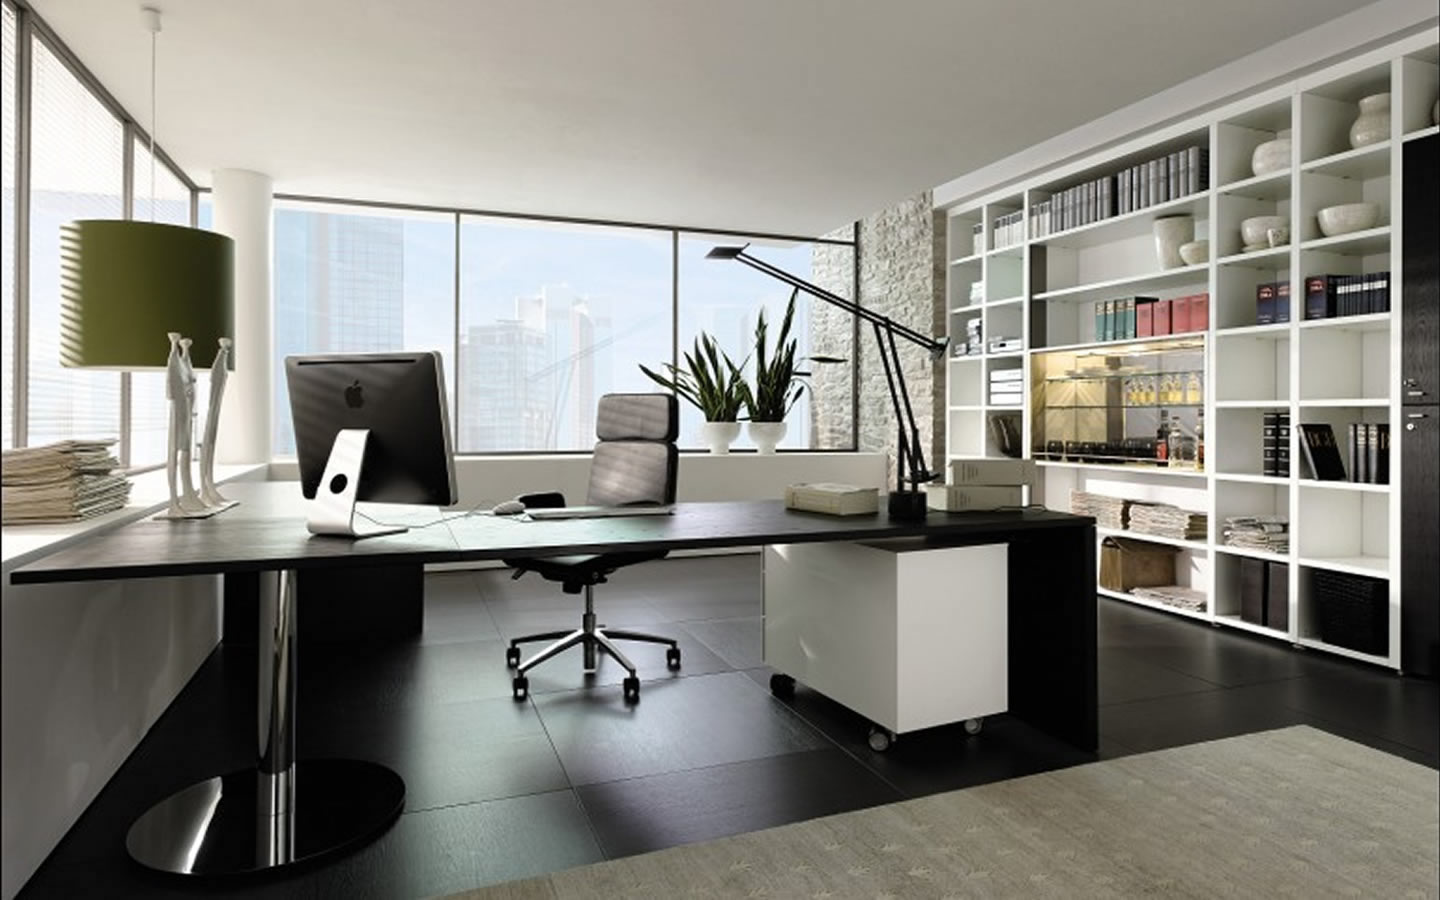 10 conseils pour adopter le feng shui dans votre bureau. Black Bedroom Furniture Sets. Home Design Ideas